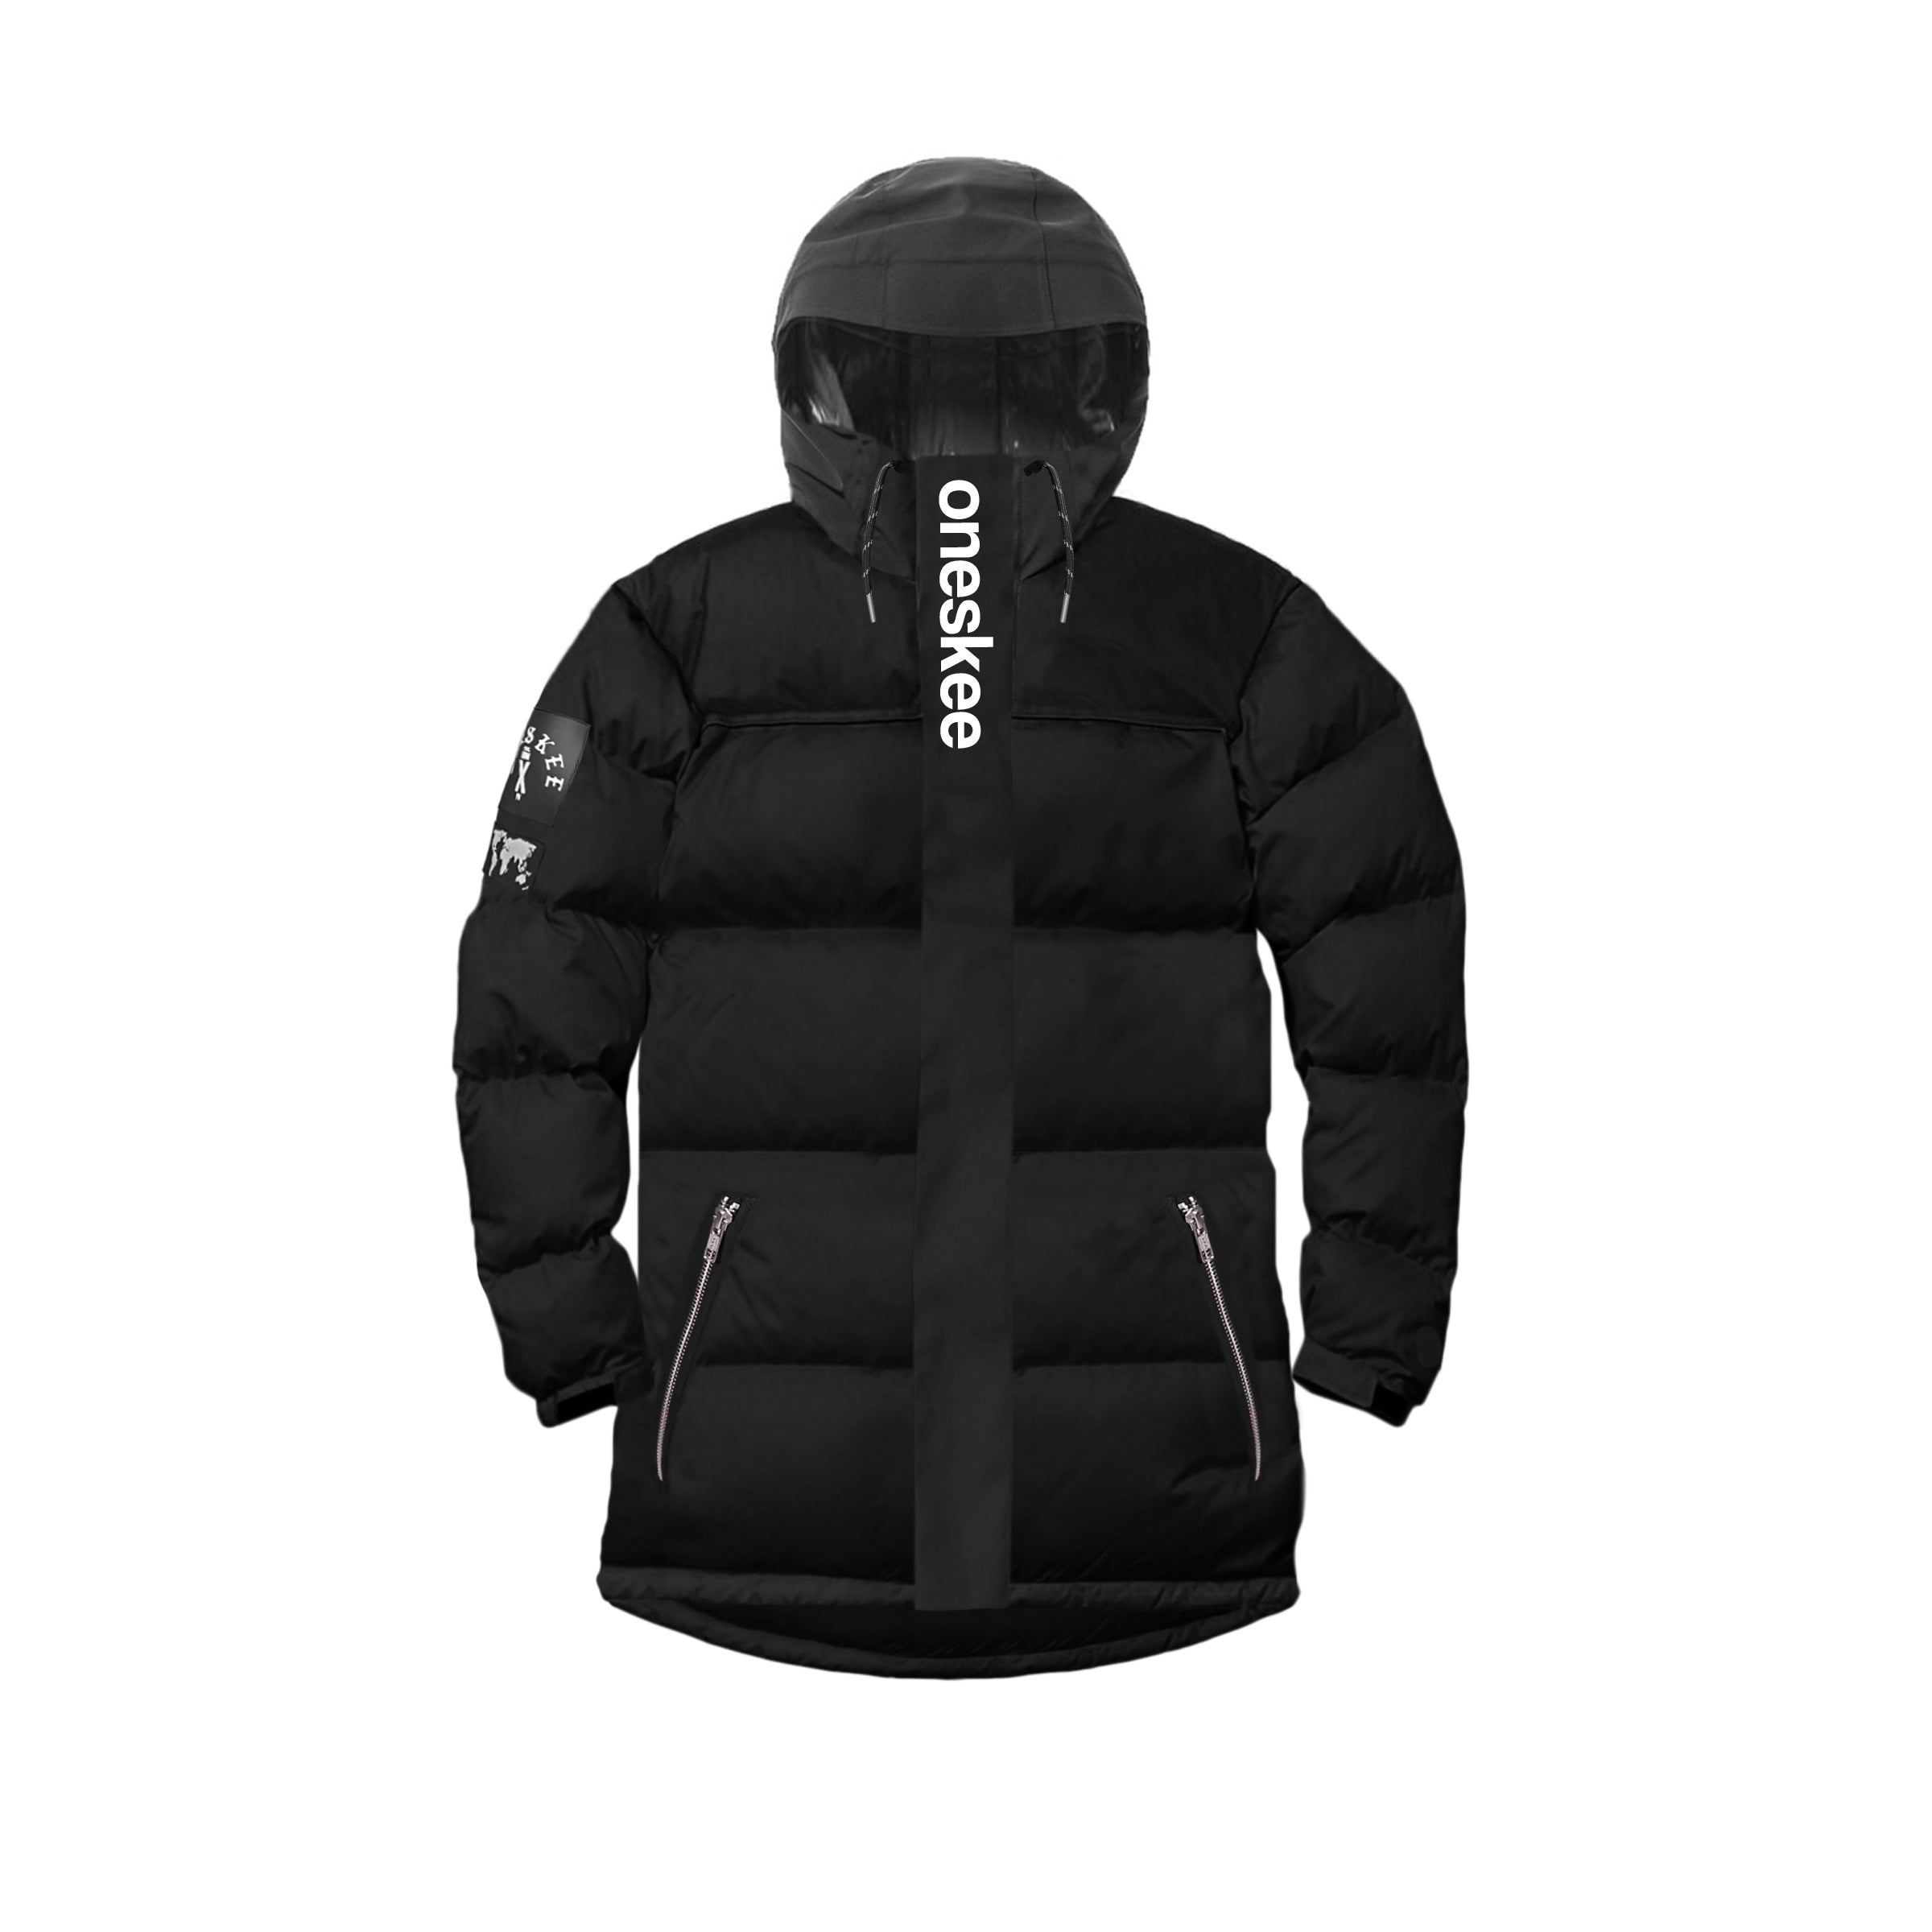 Puffer Jacket - Black image 2